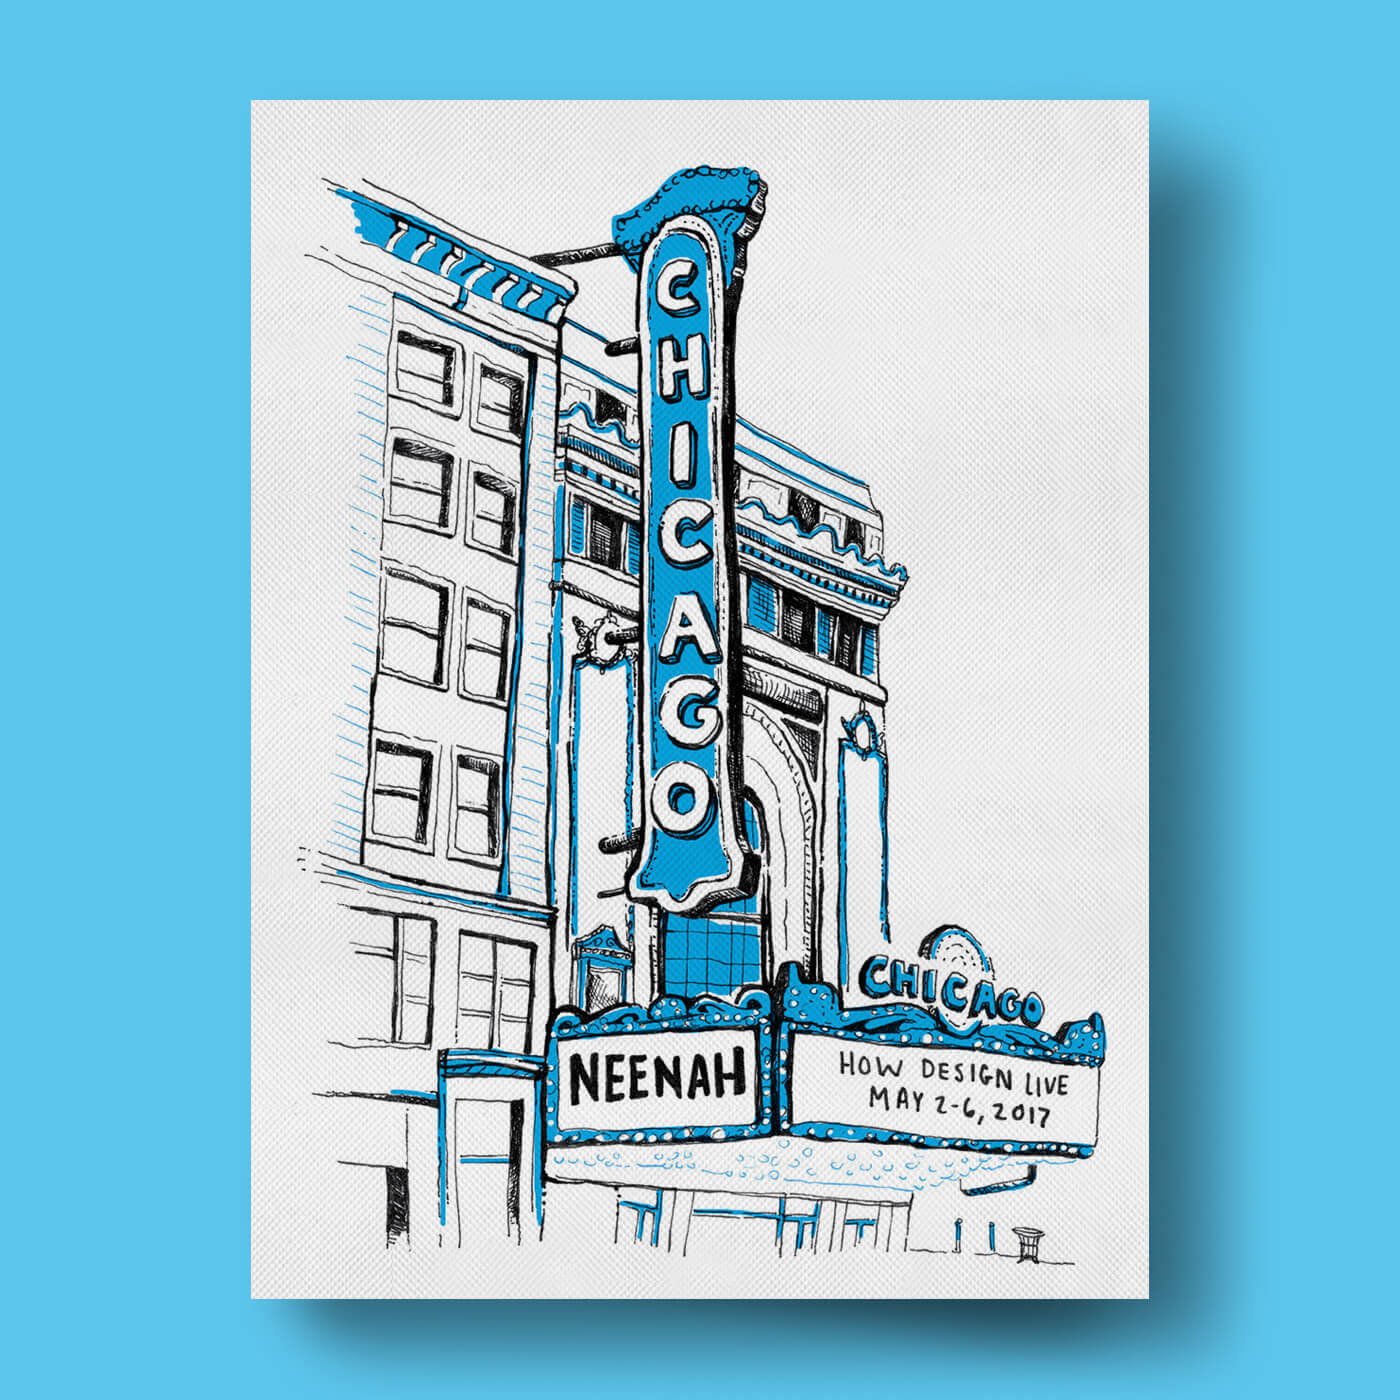 Neenah Presents Chicago - An illustrated guide of the Windy City, featuring seven maps of how to experience Chicago for designers, sightseers, pizza enthusiasts and more.